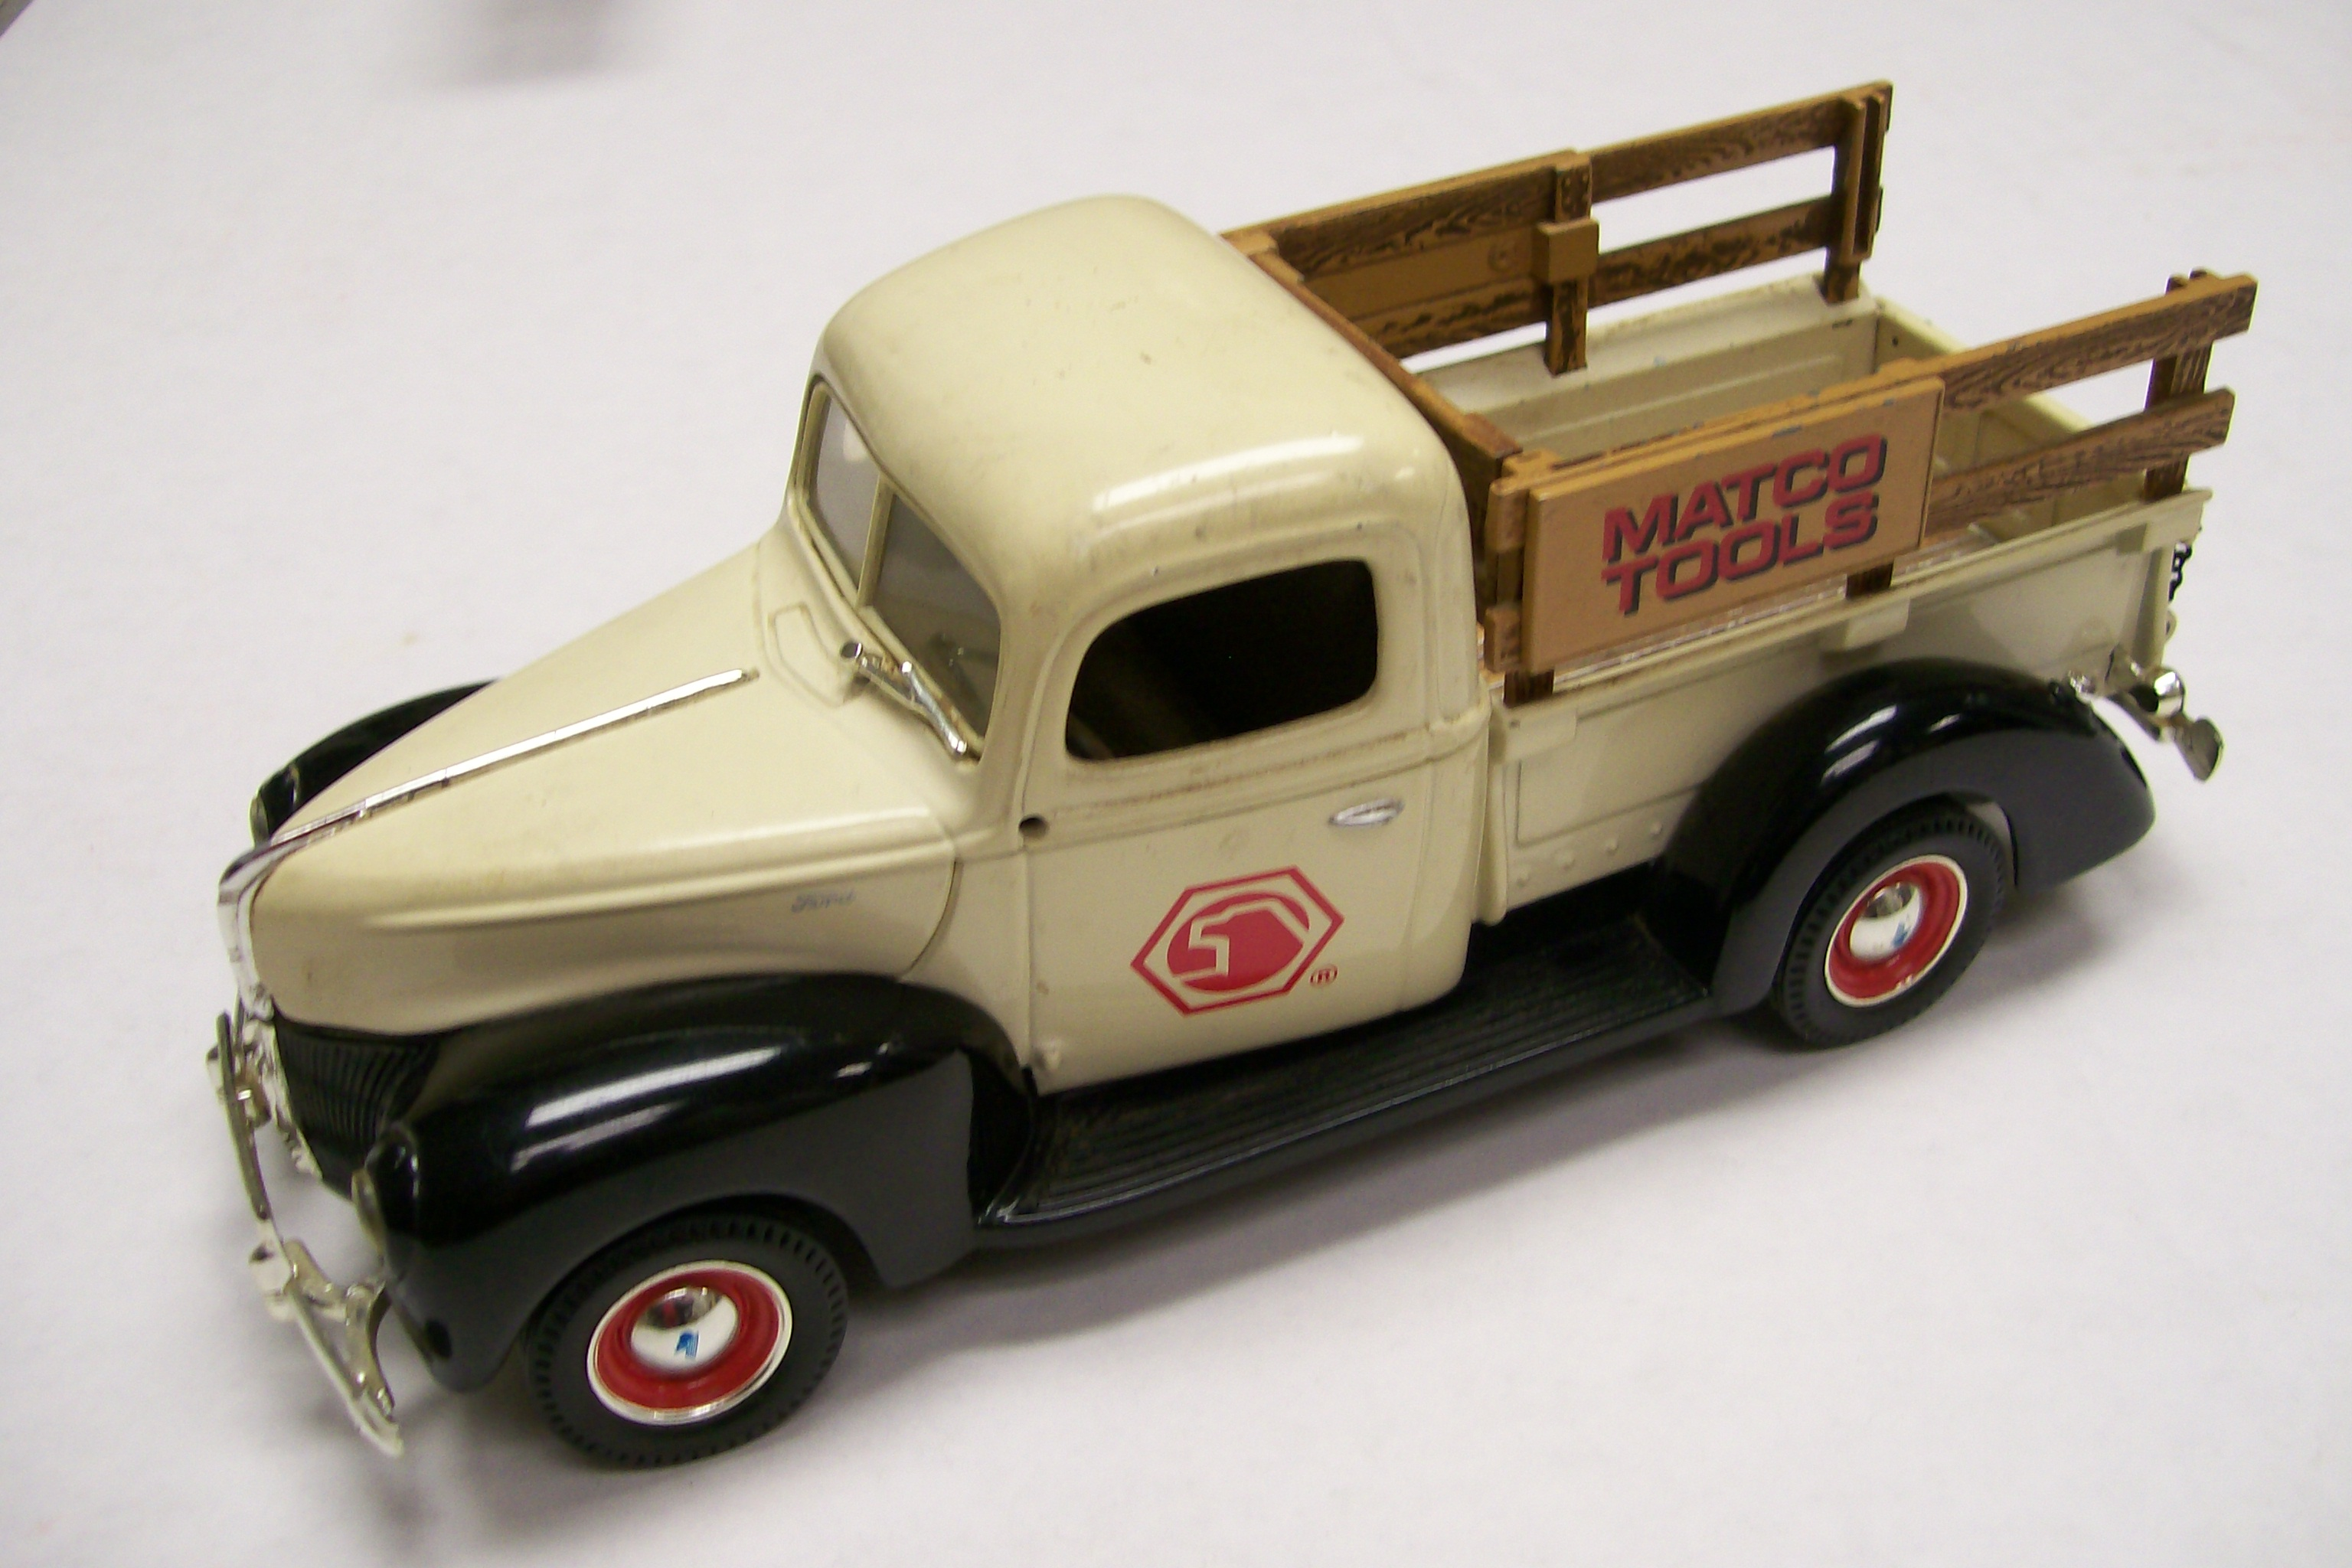 Ertl 1940 Ford Pickup Truck Advertising Matco Tools Wood rails